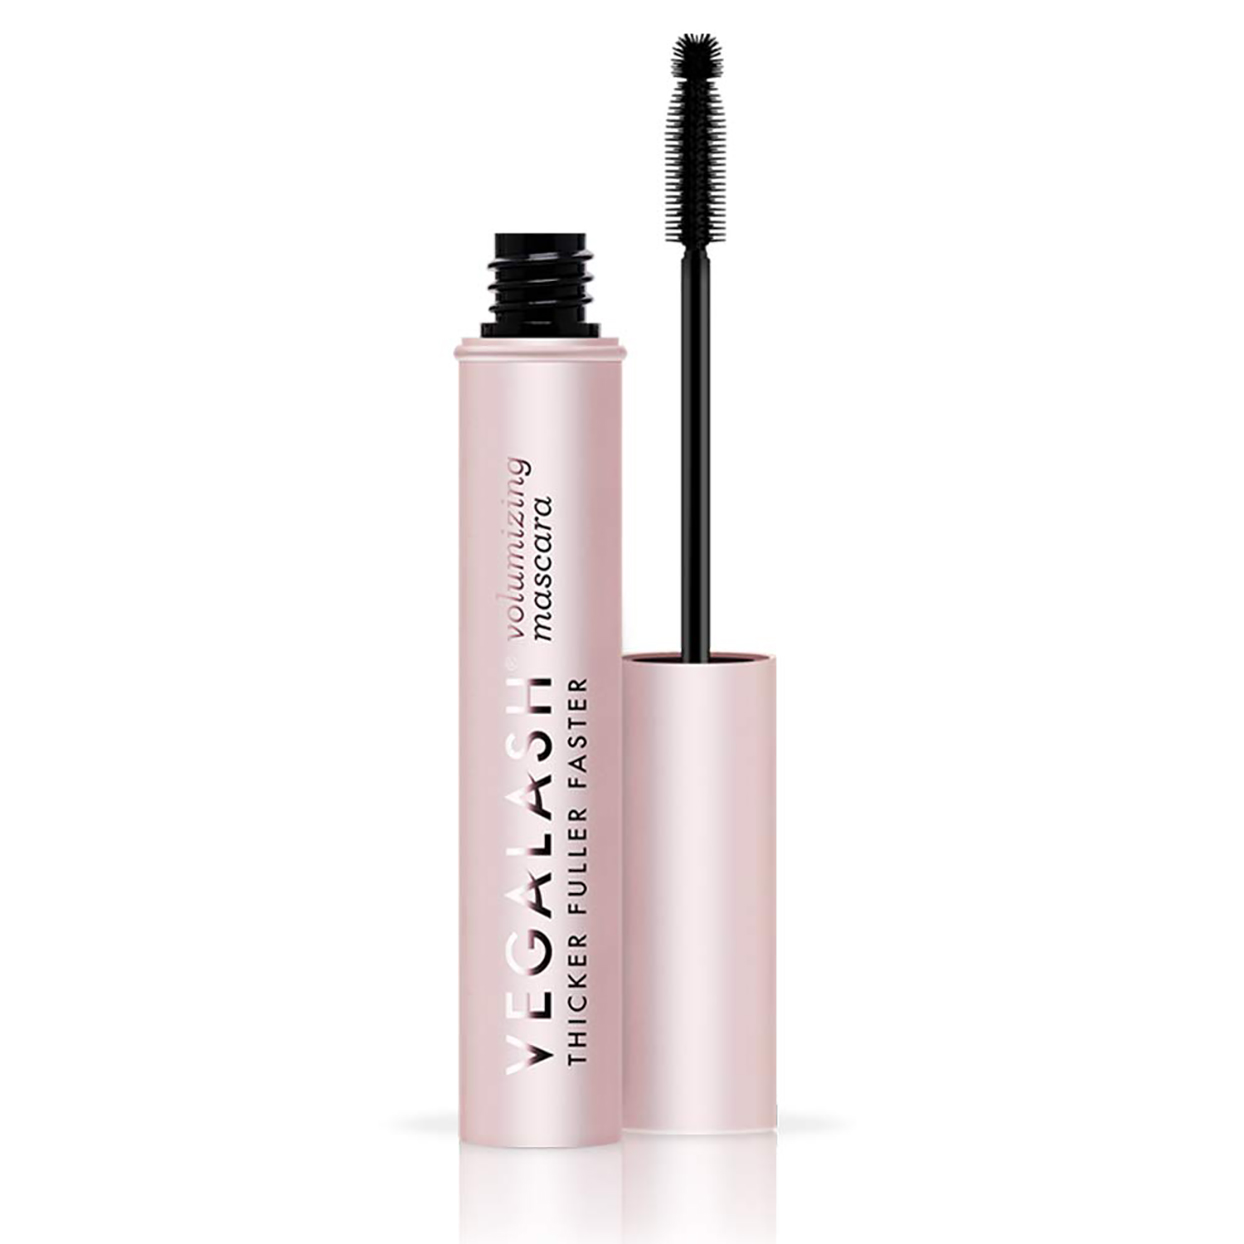 Vegamour's Serum-infused Mascara Gave Me The Luscious Lashes I Never Had